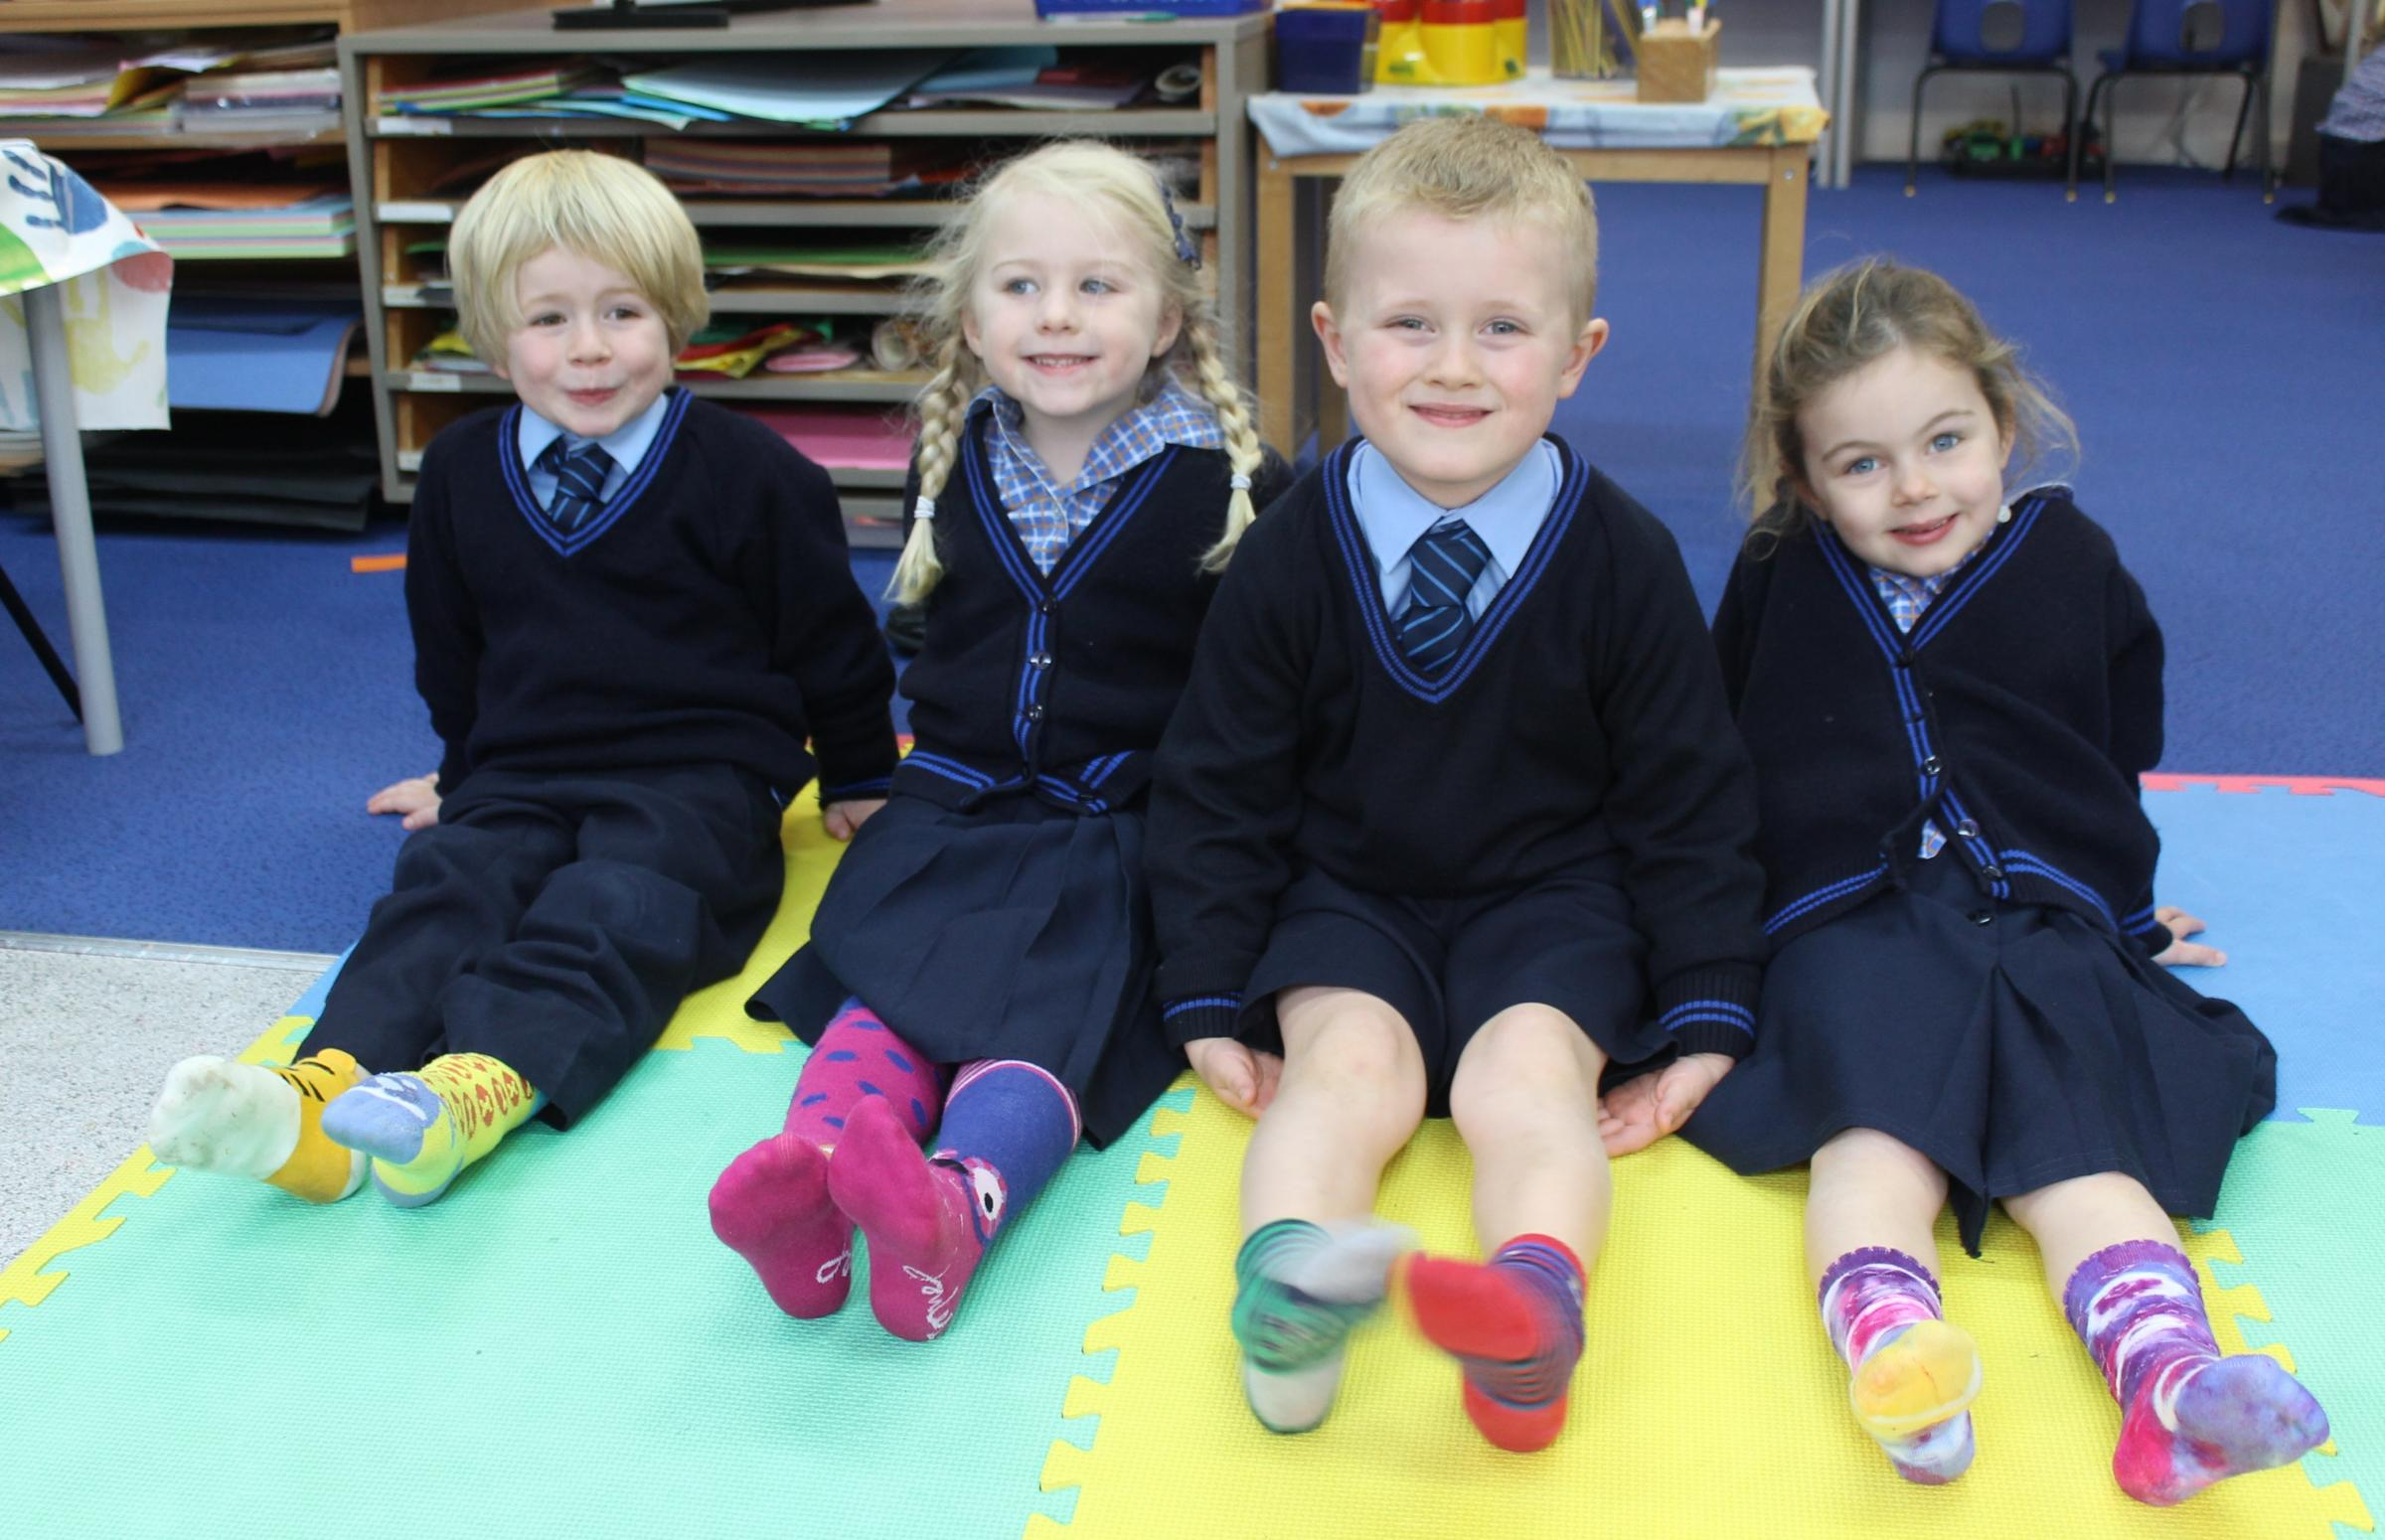 Reception class children from St Margaret's Preparatory School take part in Odd Sock Day